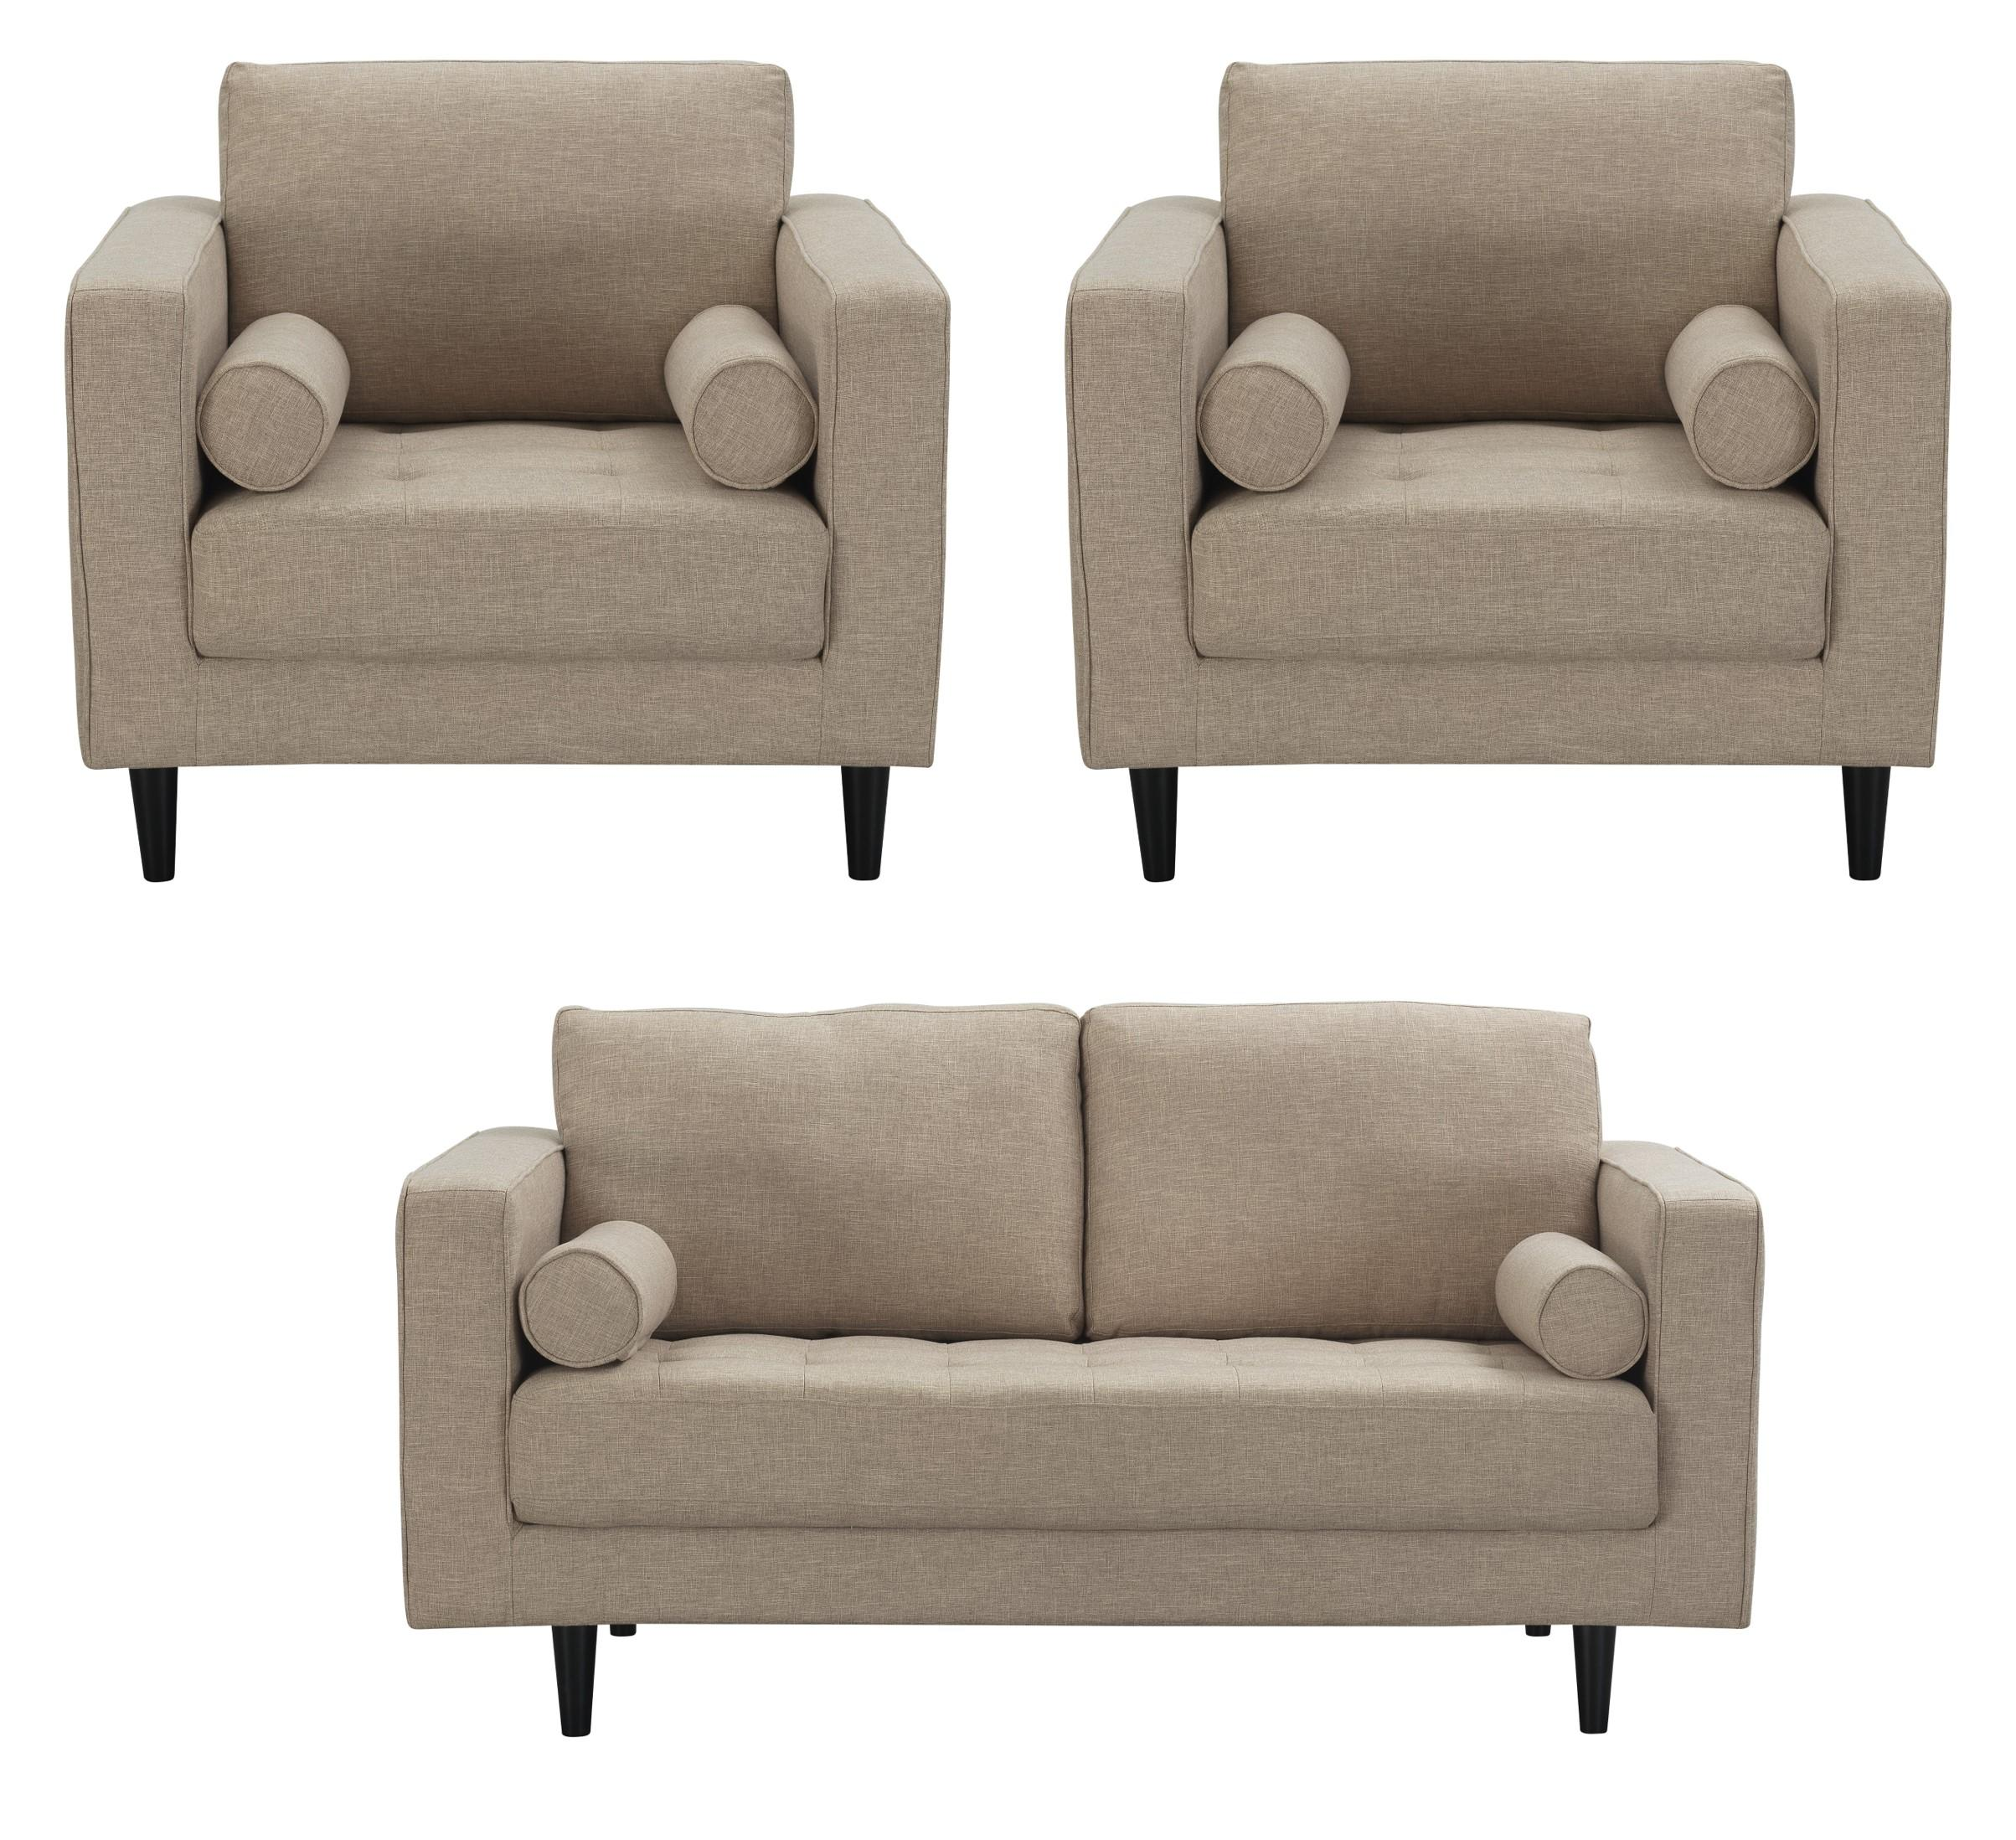 Manhattan Comfort Arthur Tan Brown 3pc Living Room Set | The ...